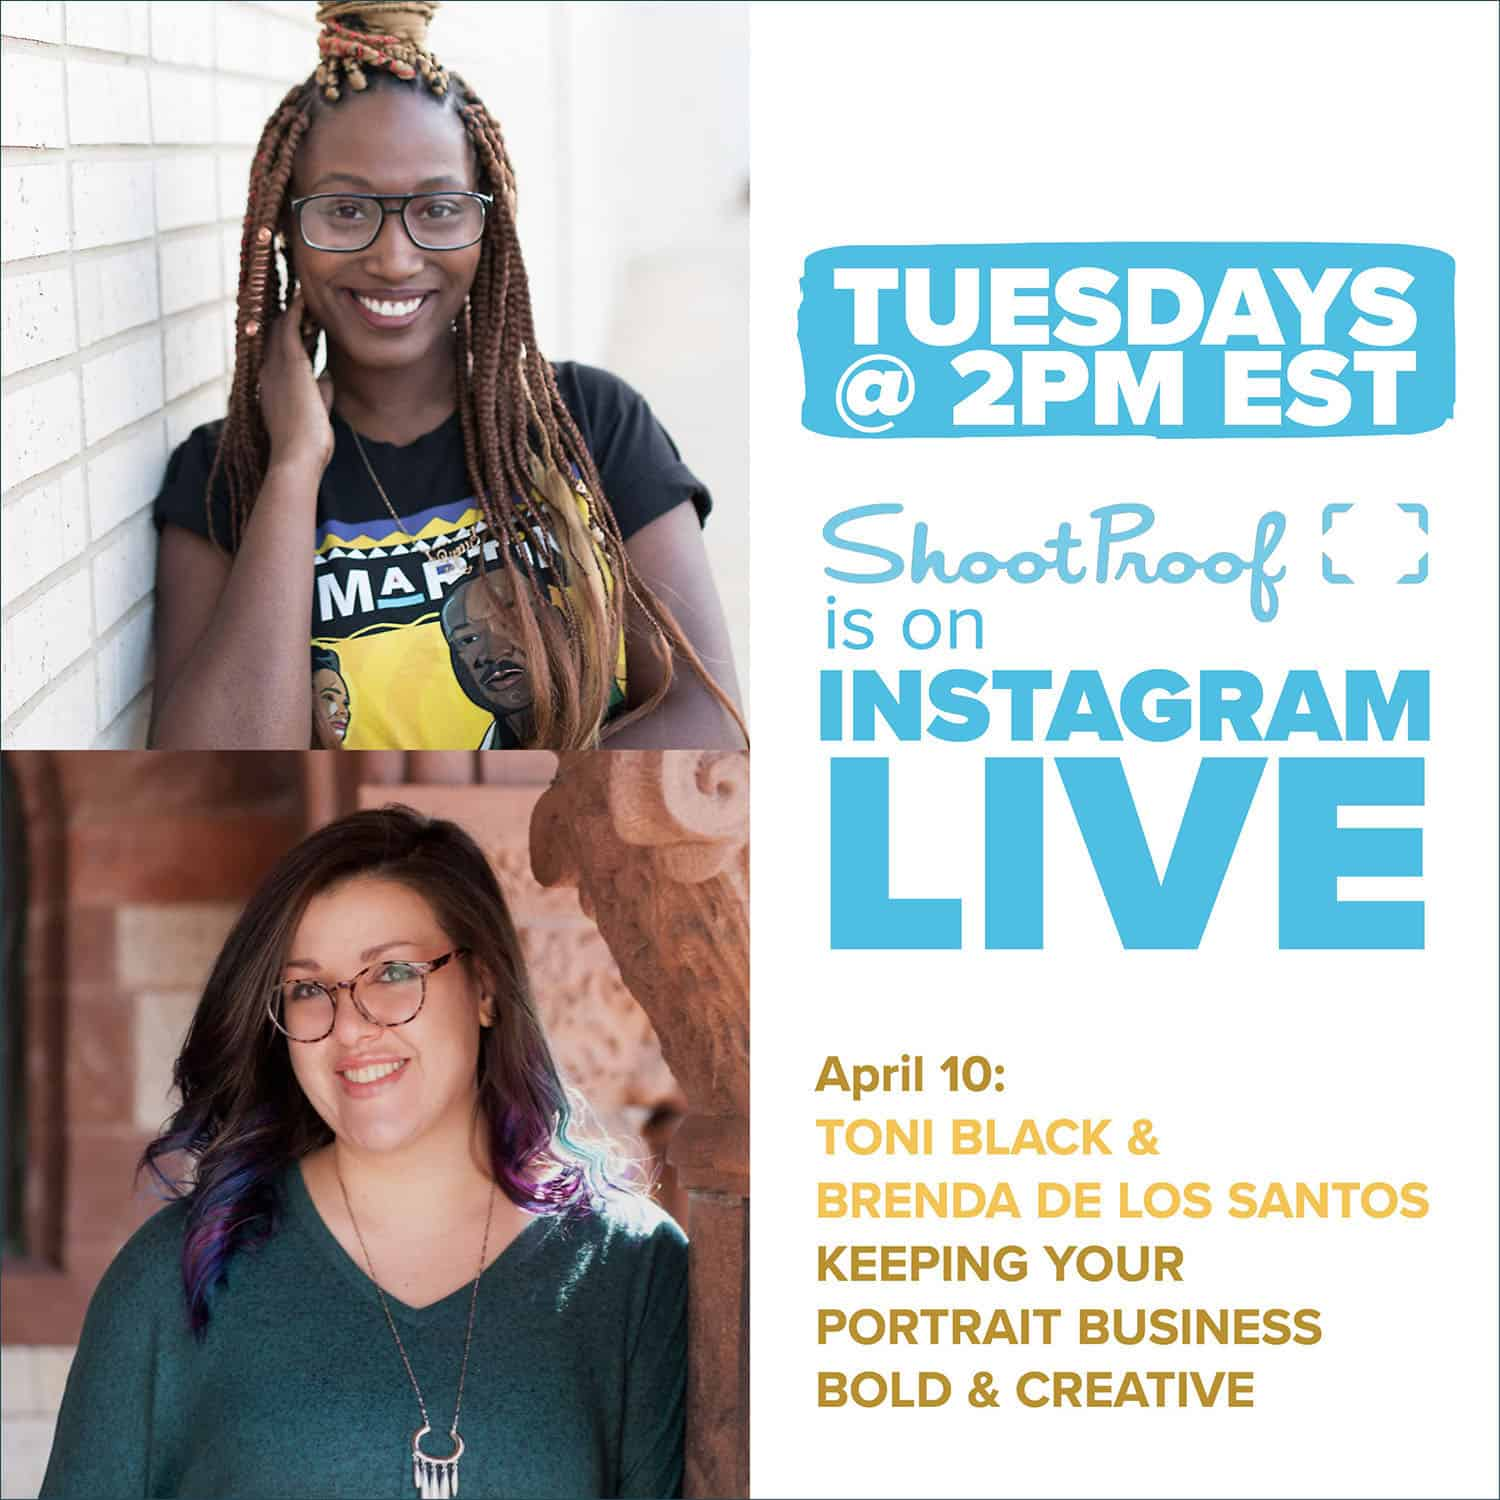 ShootProof: Instagram LIVE On April 10 - Keeping Your Portrait Business Bold & Creative